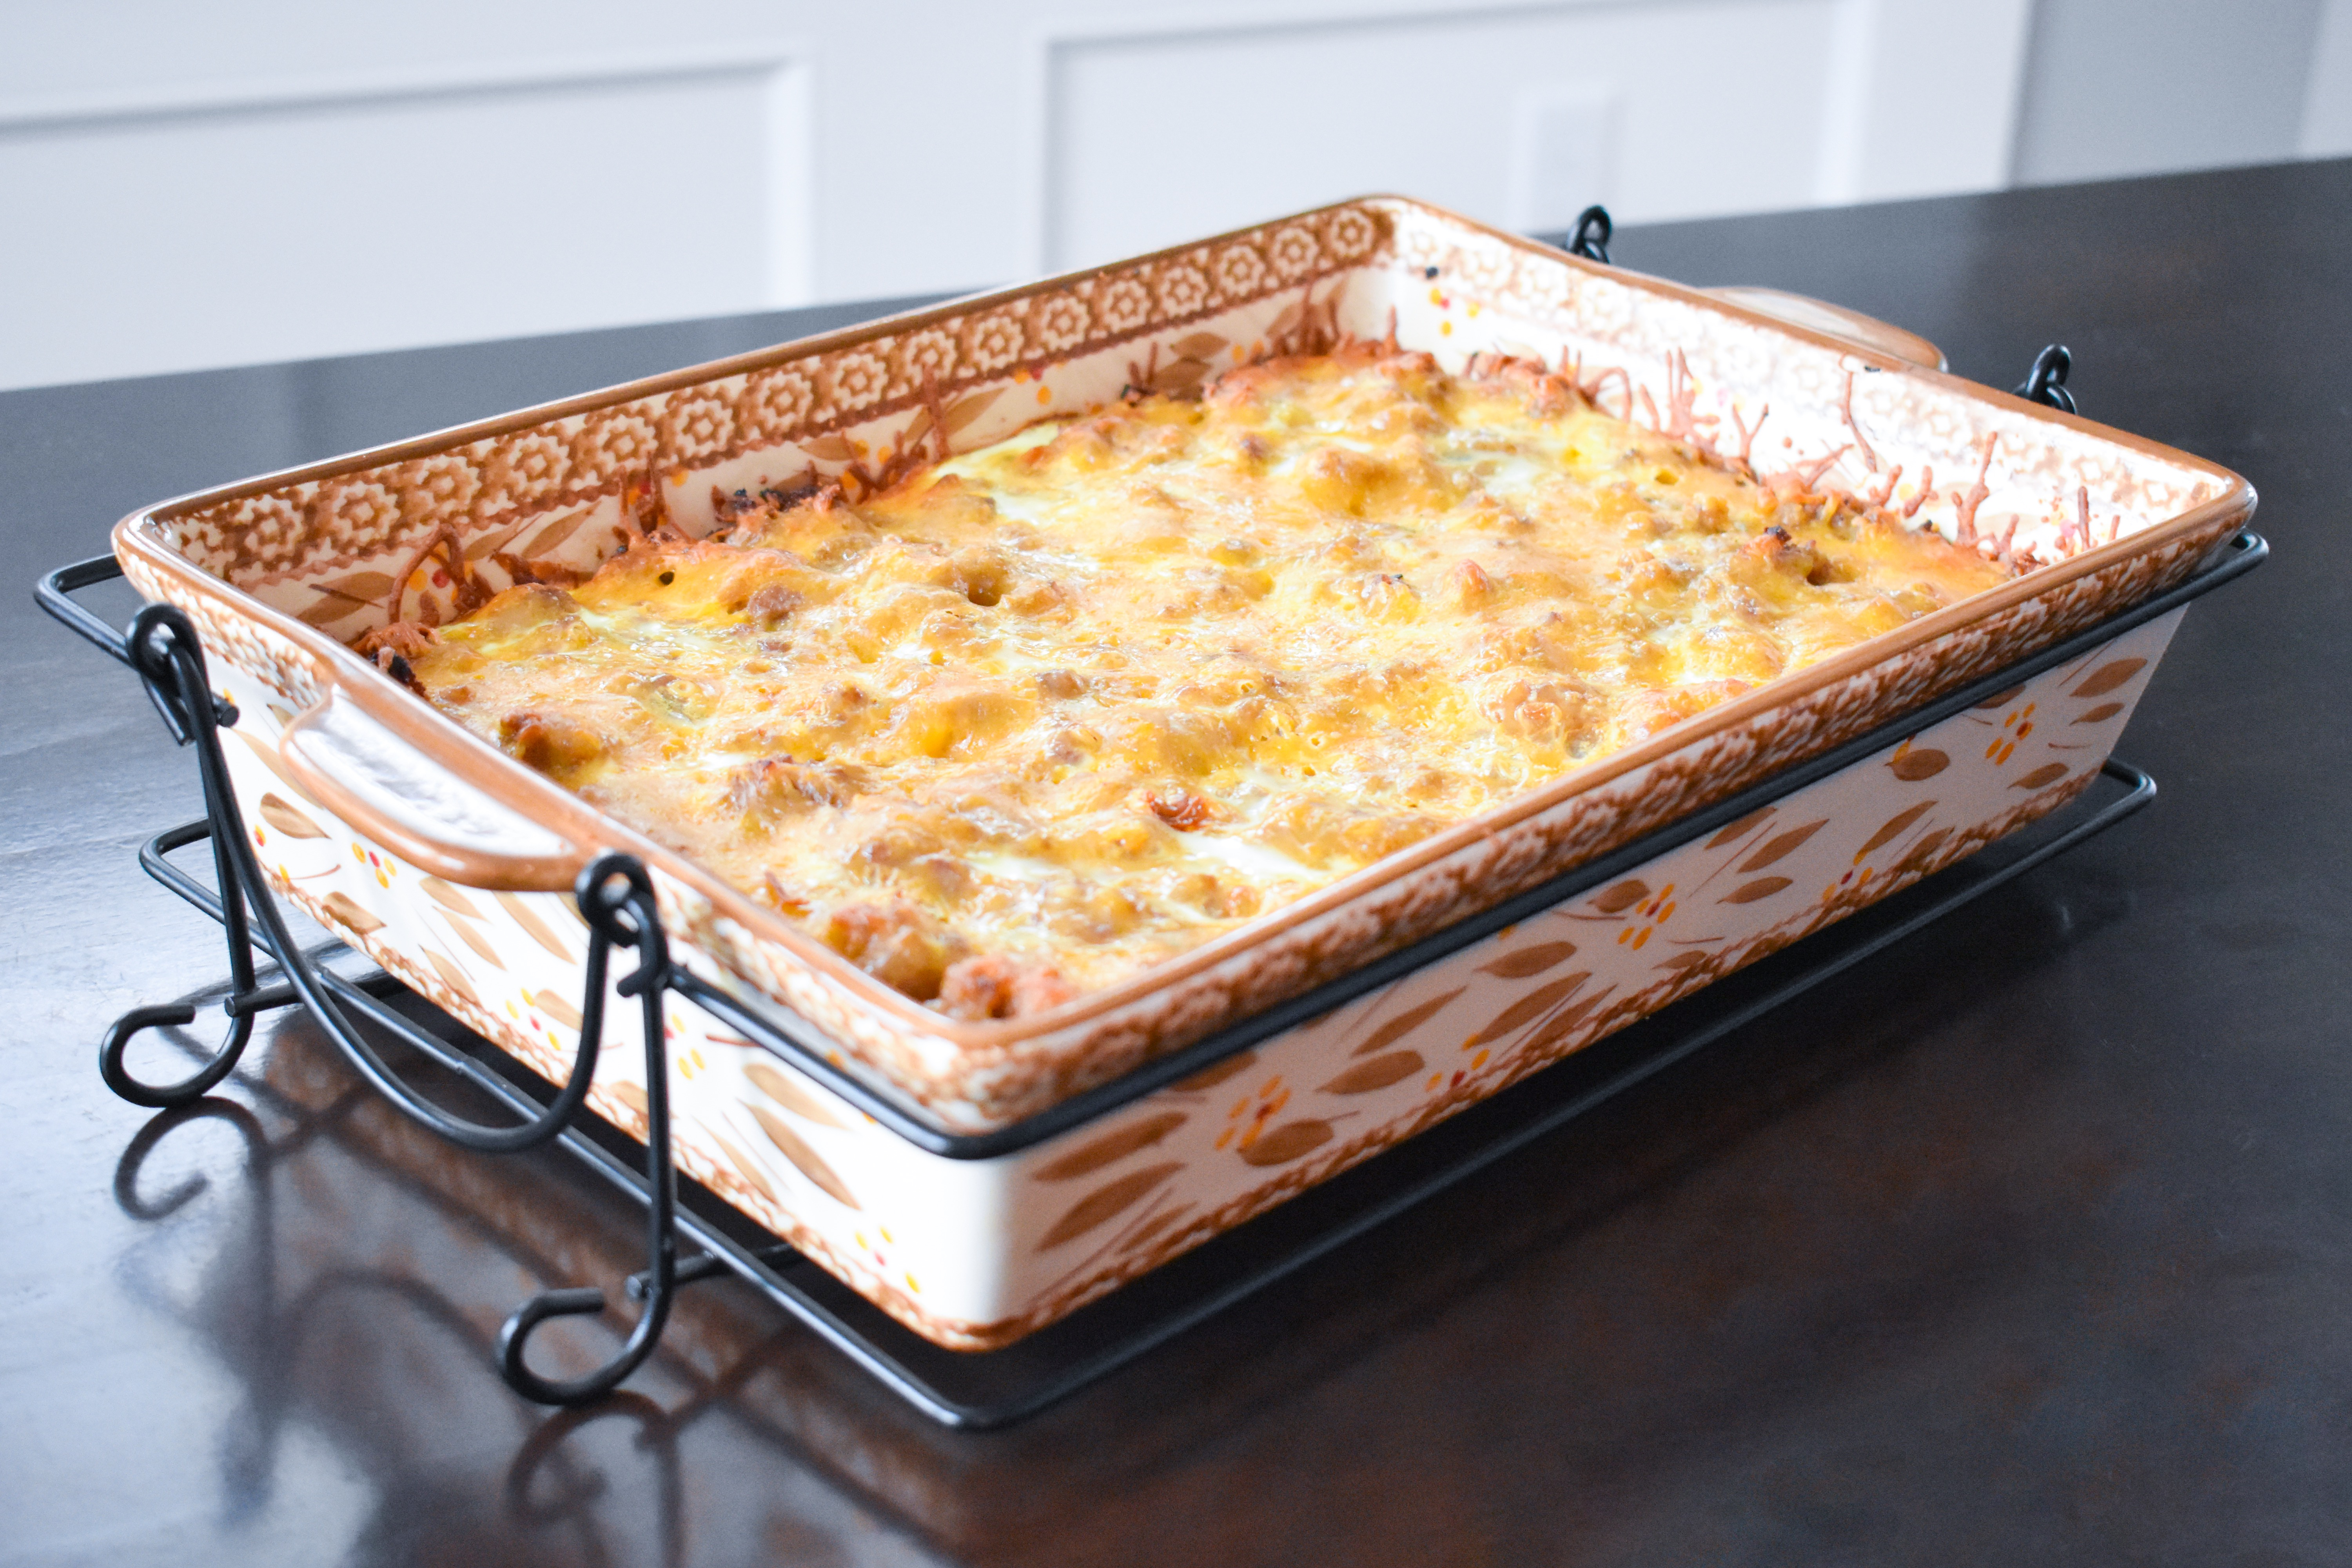 Sausage, Egg, and Hashbrown Breakfast Casserole Recipe